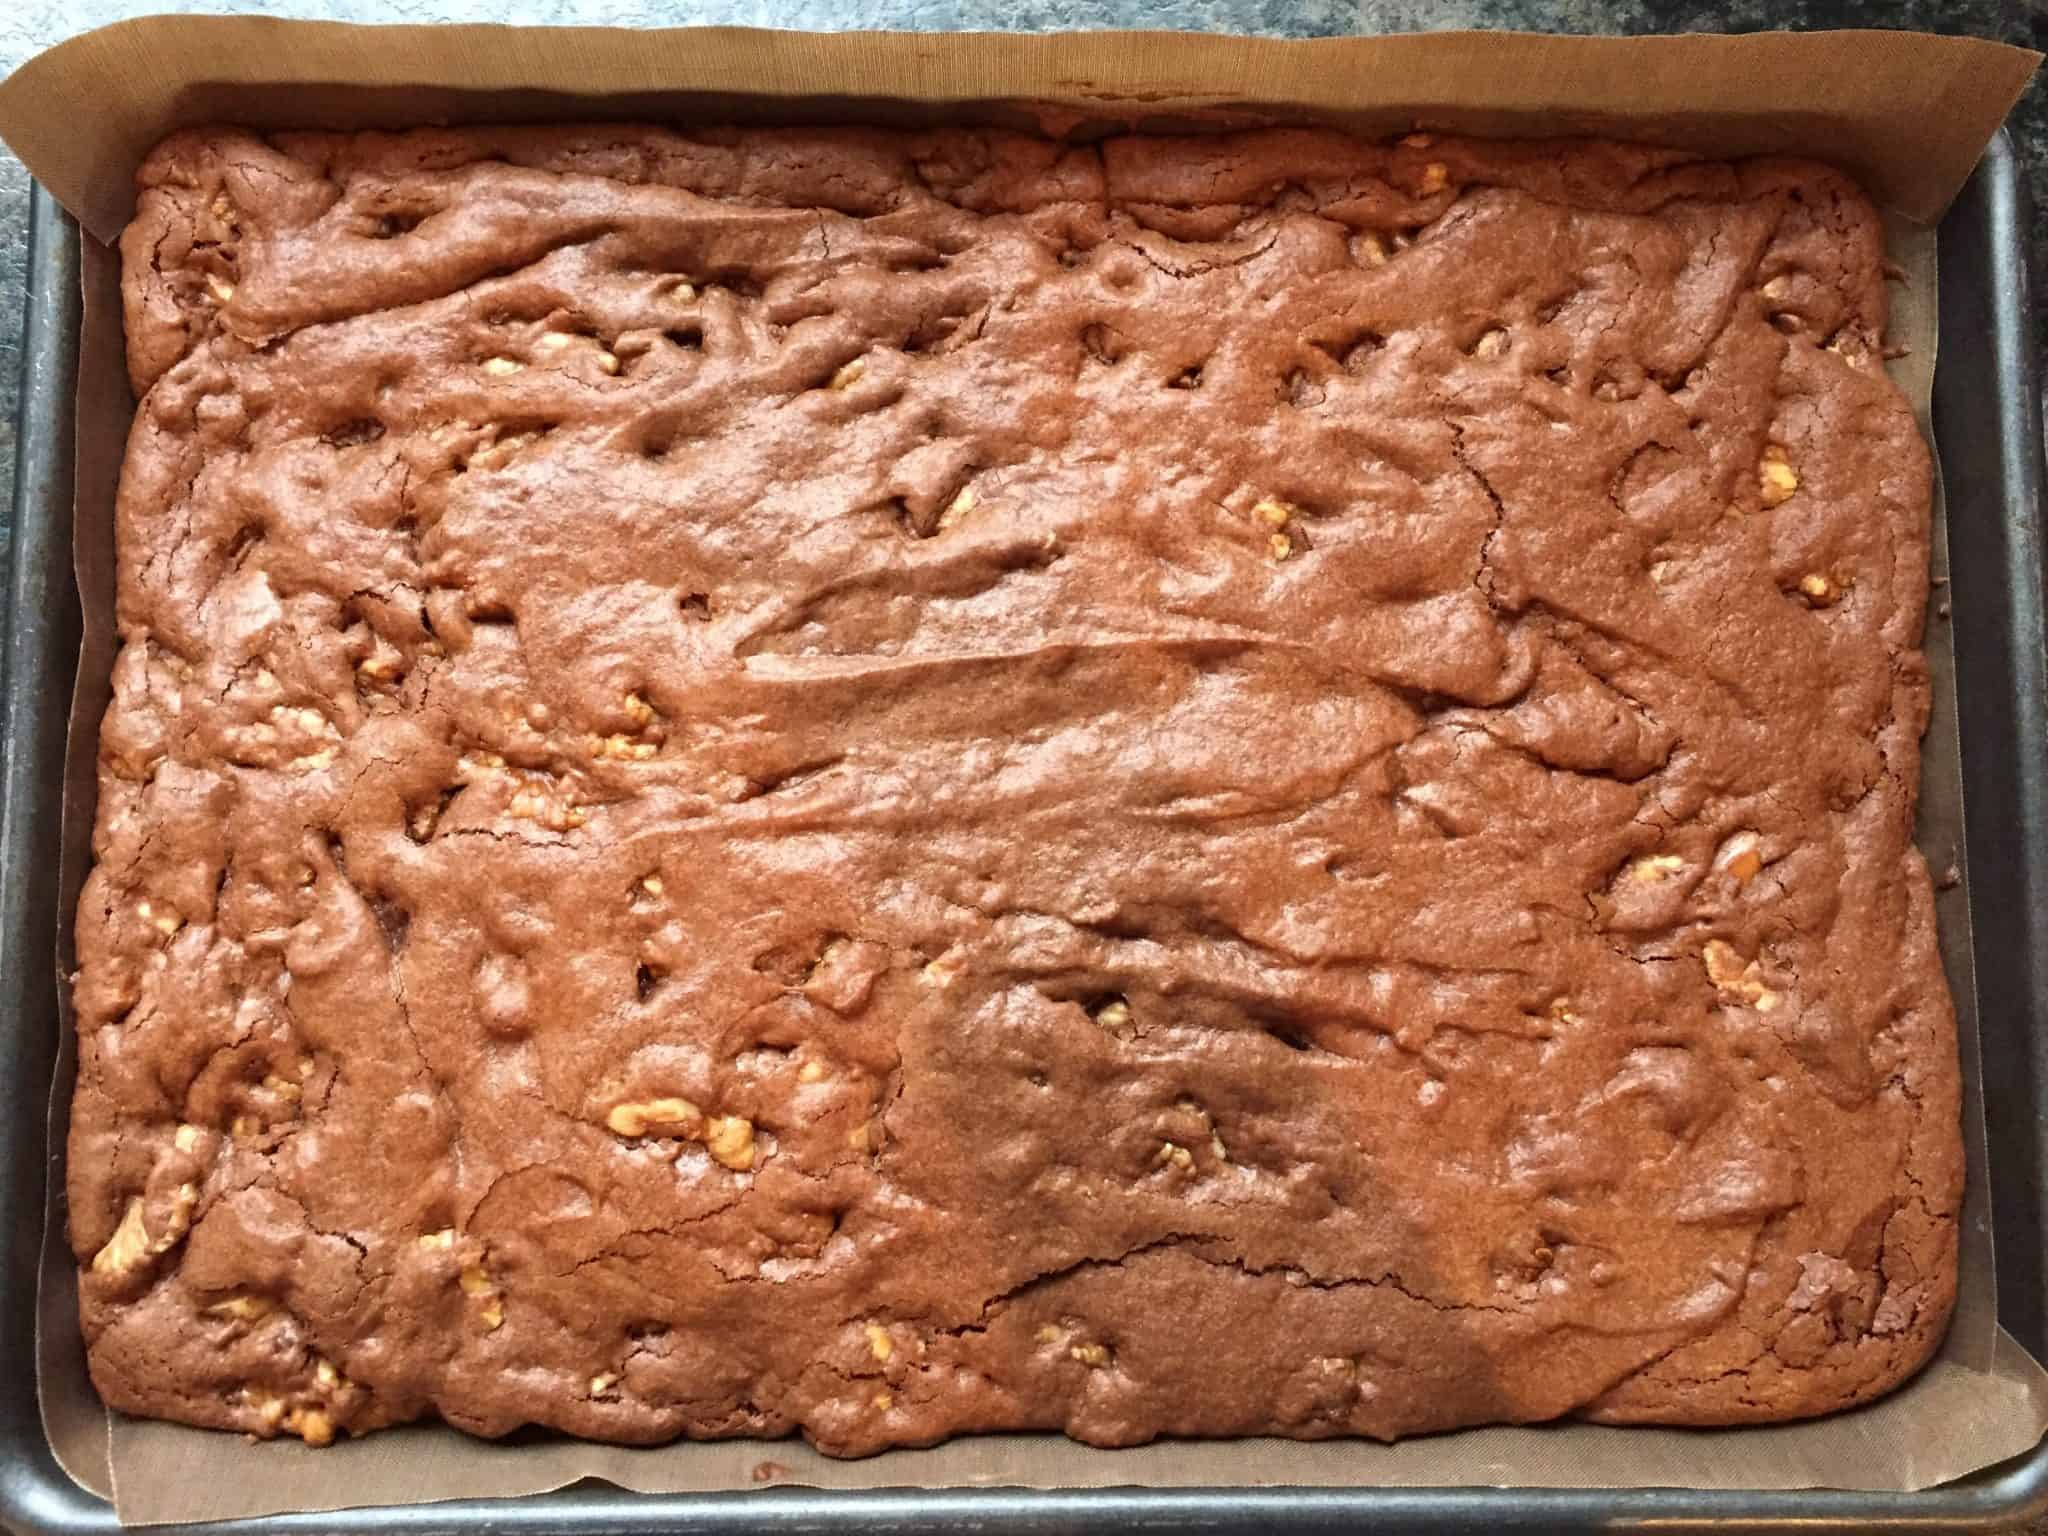 Cooked brownie mix